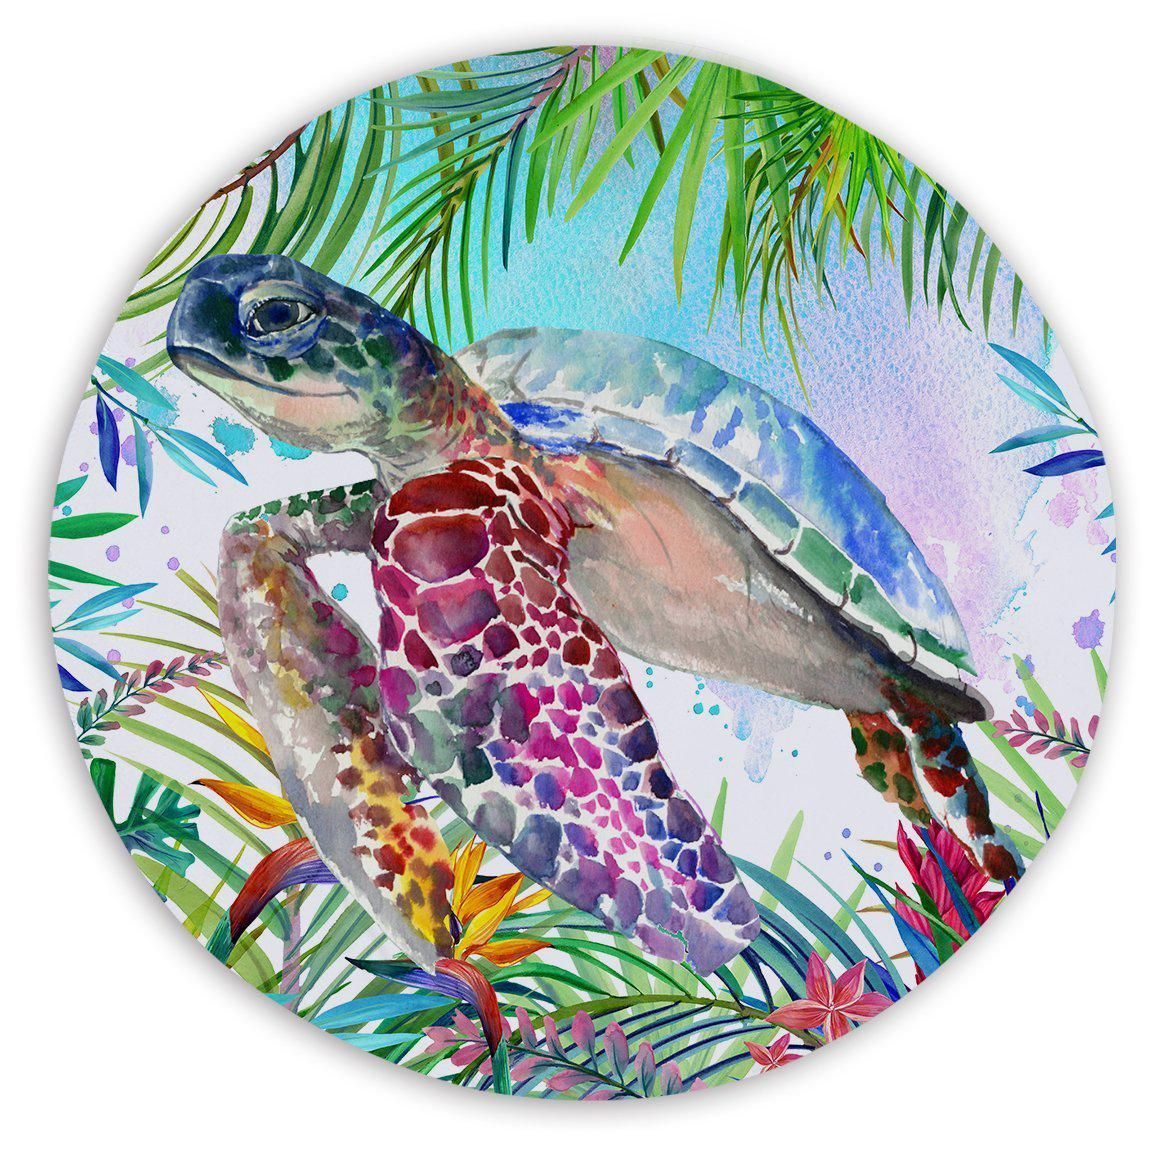 Sand Free Beach Towel-The Original Tropical Sea Turtle Round Sand-Free Towel-Coastal Passion